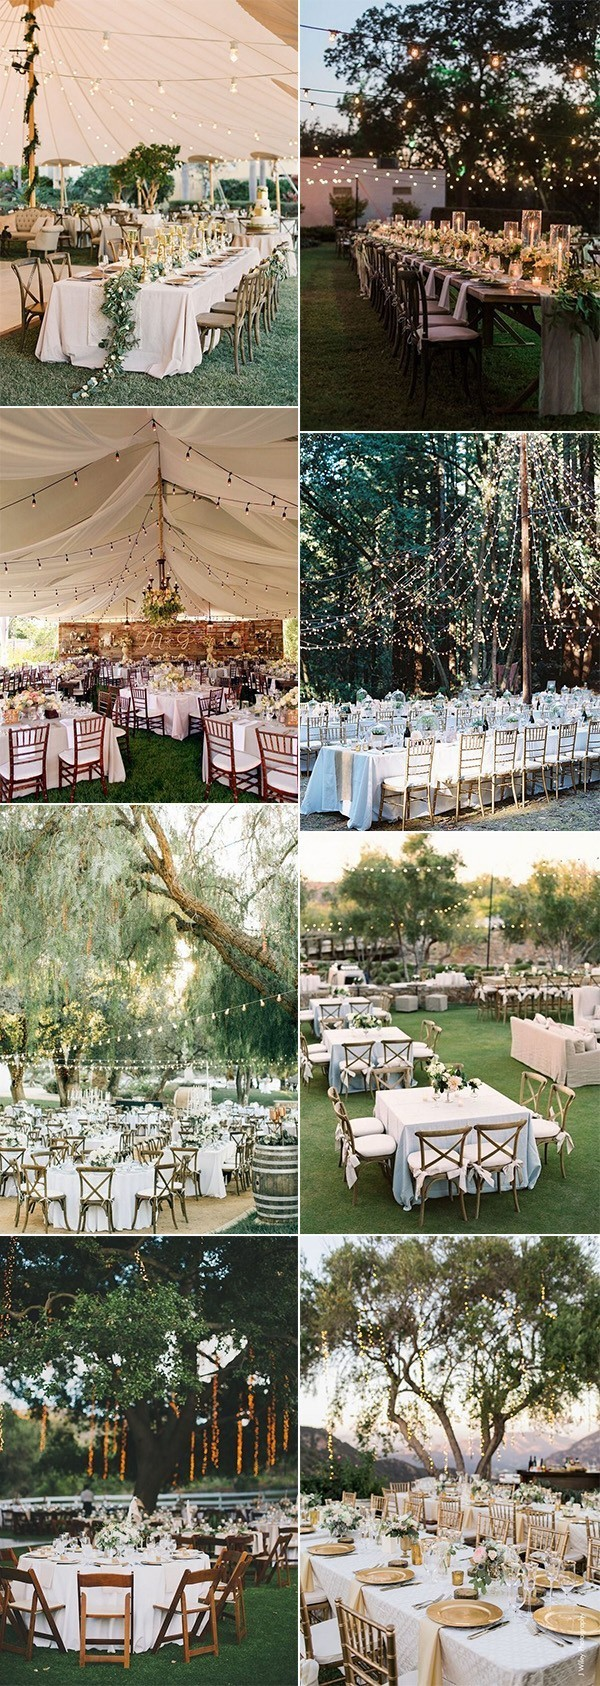 outdoor wedding reception ideas for 2018 trends